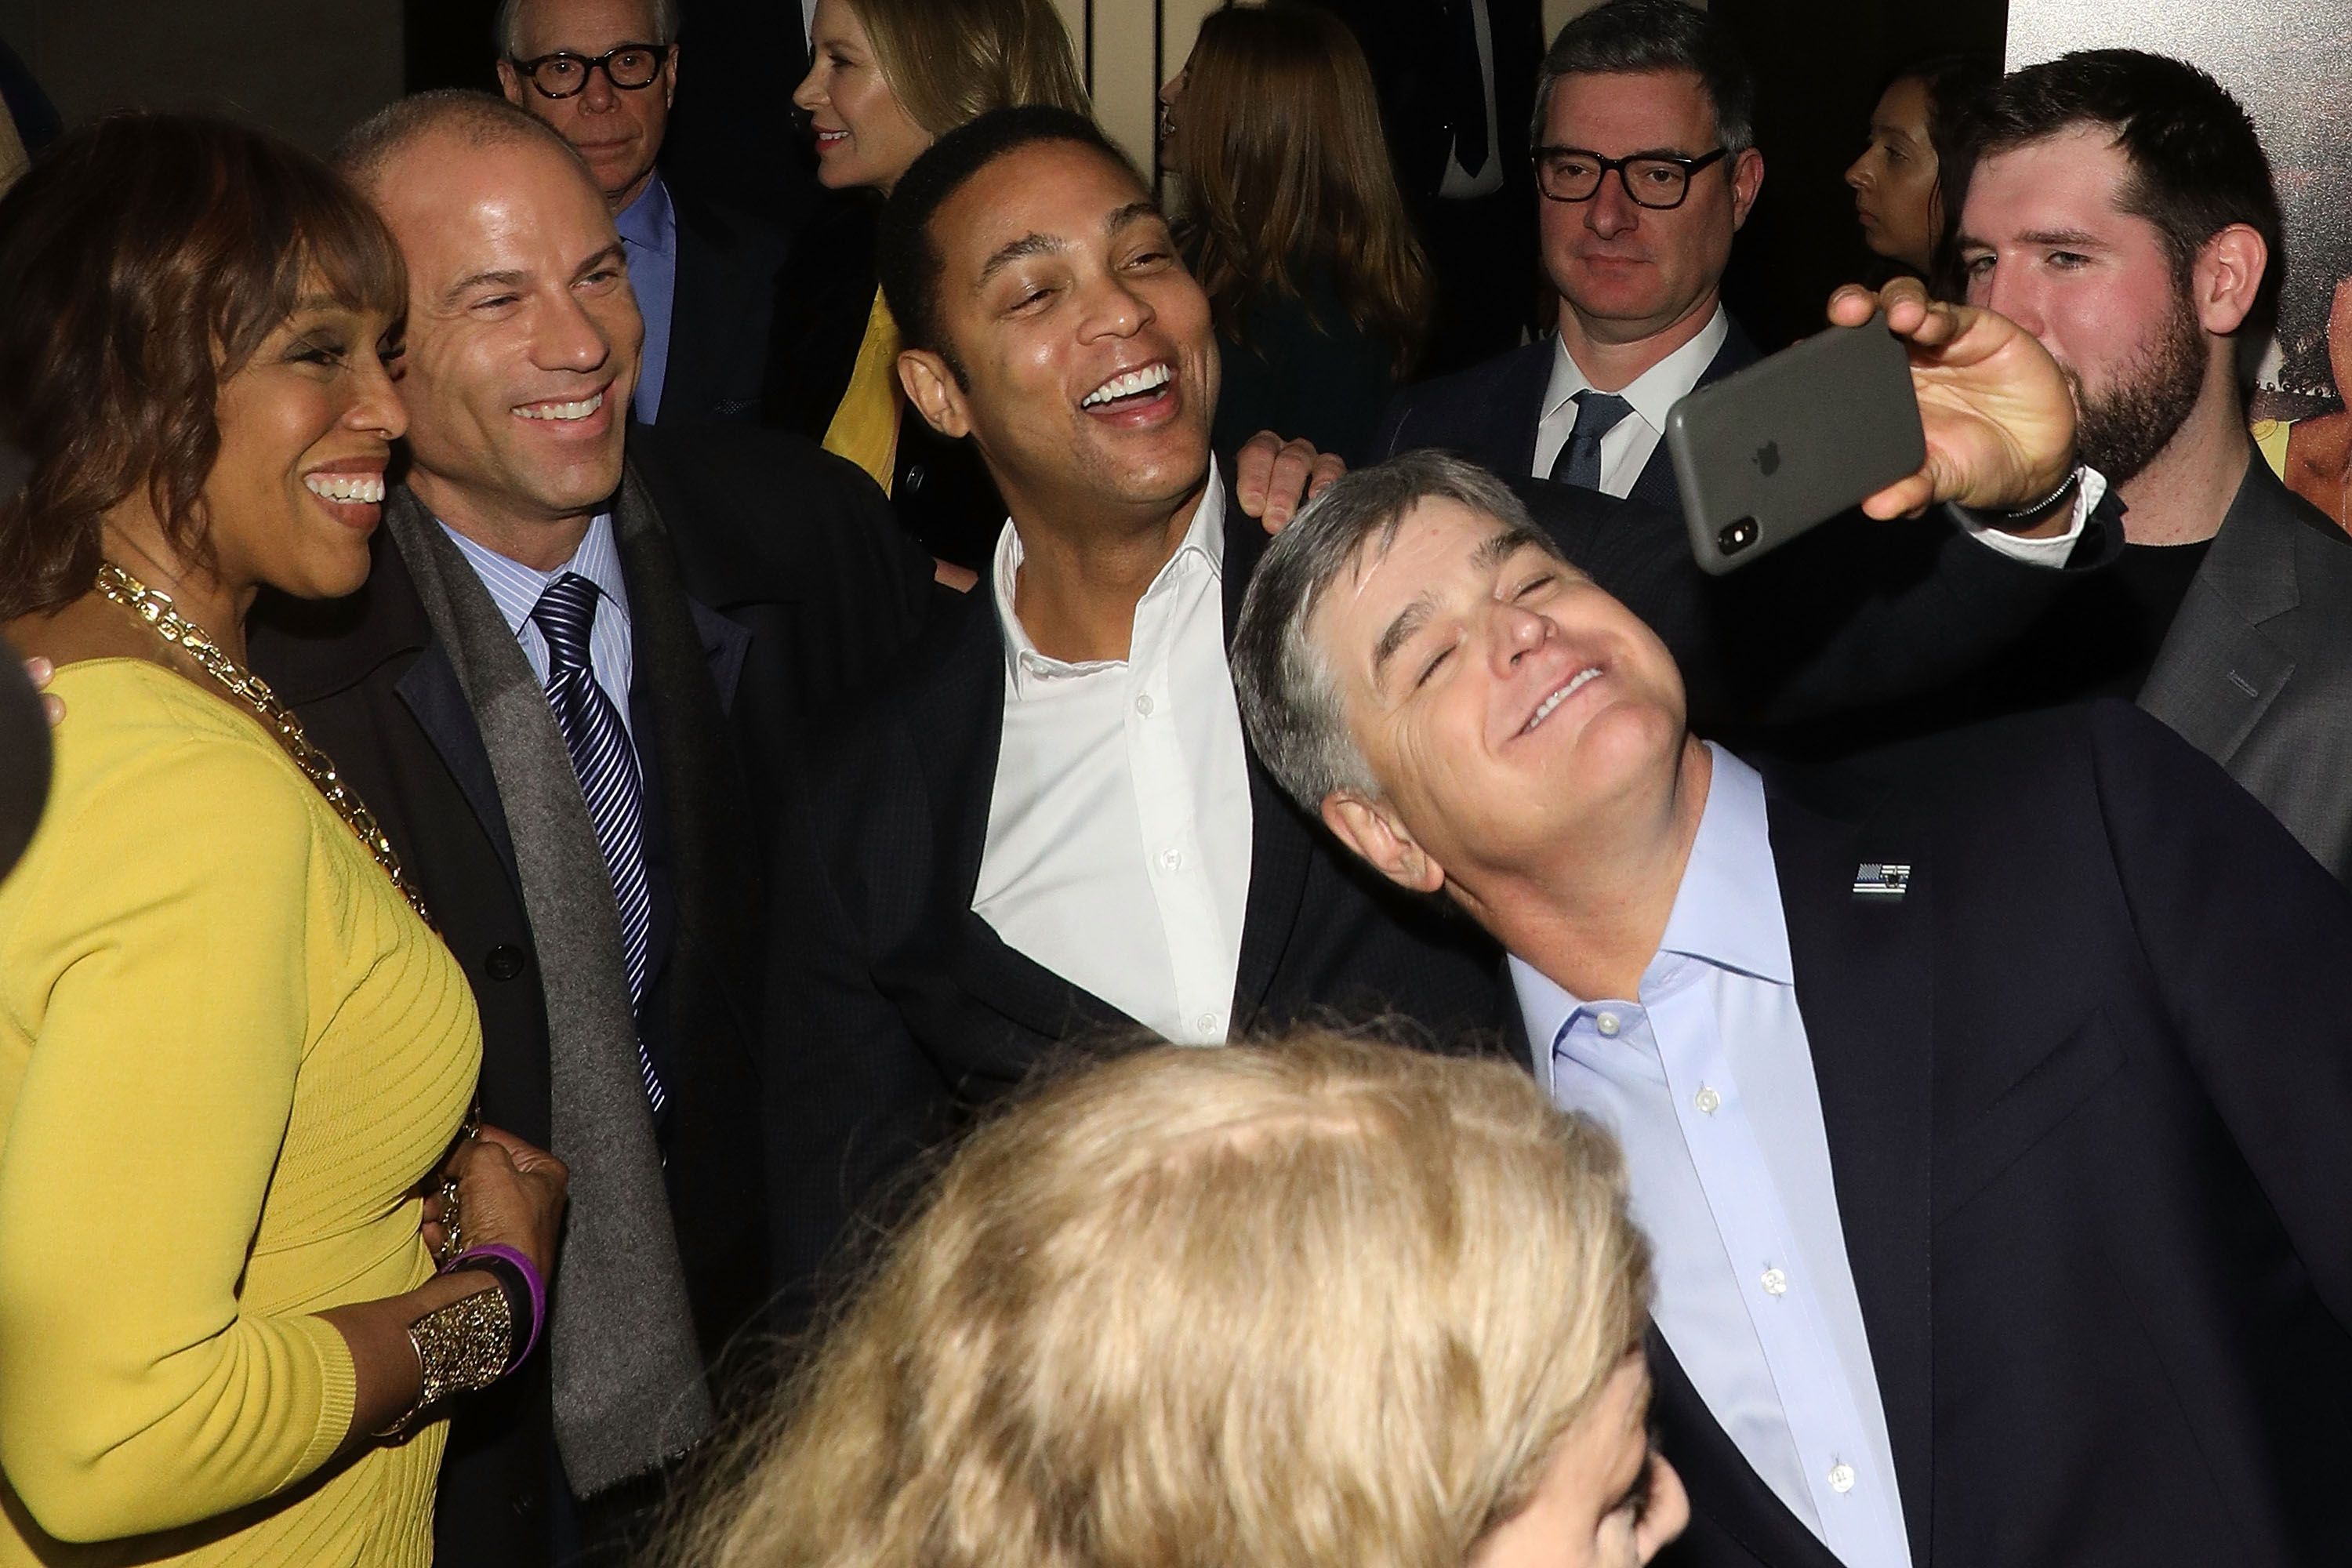 Gayle King, Michael Avenatti, CNN's Don Lemon, and Fox News' Sean Hannity attend the 2018 The Hollywood Reporter's 35 Most Powerful People In Media at The Pool on April 12, 2018.